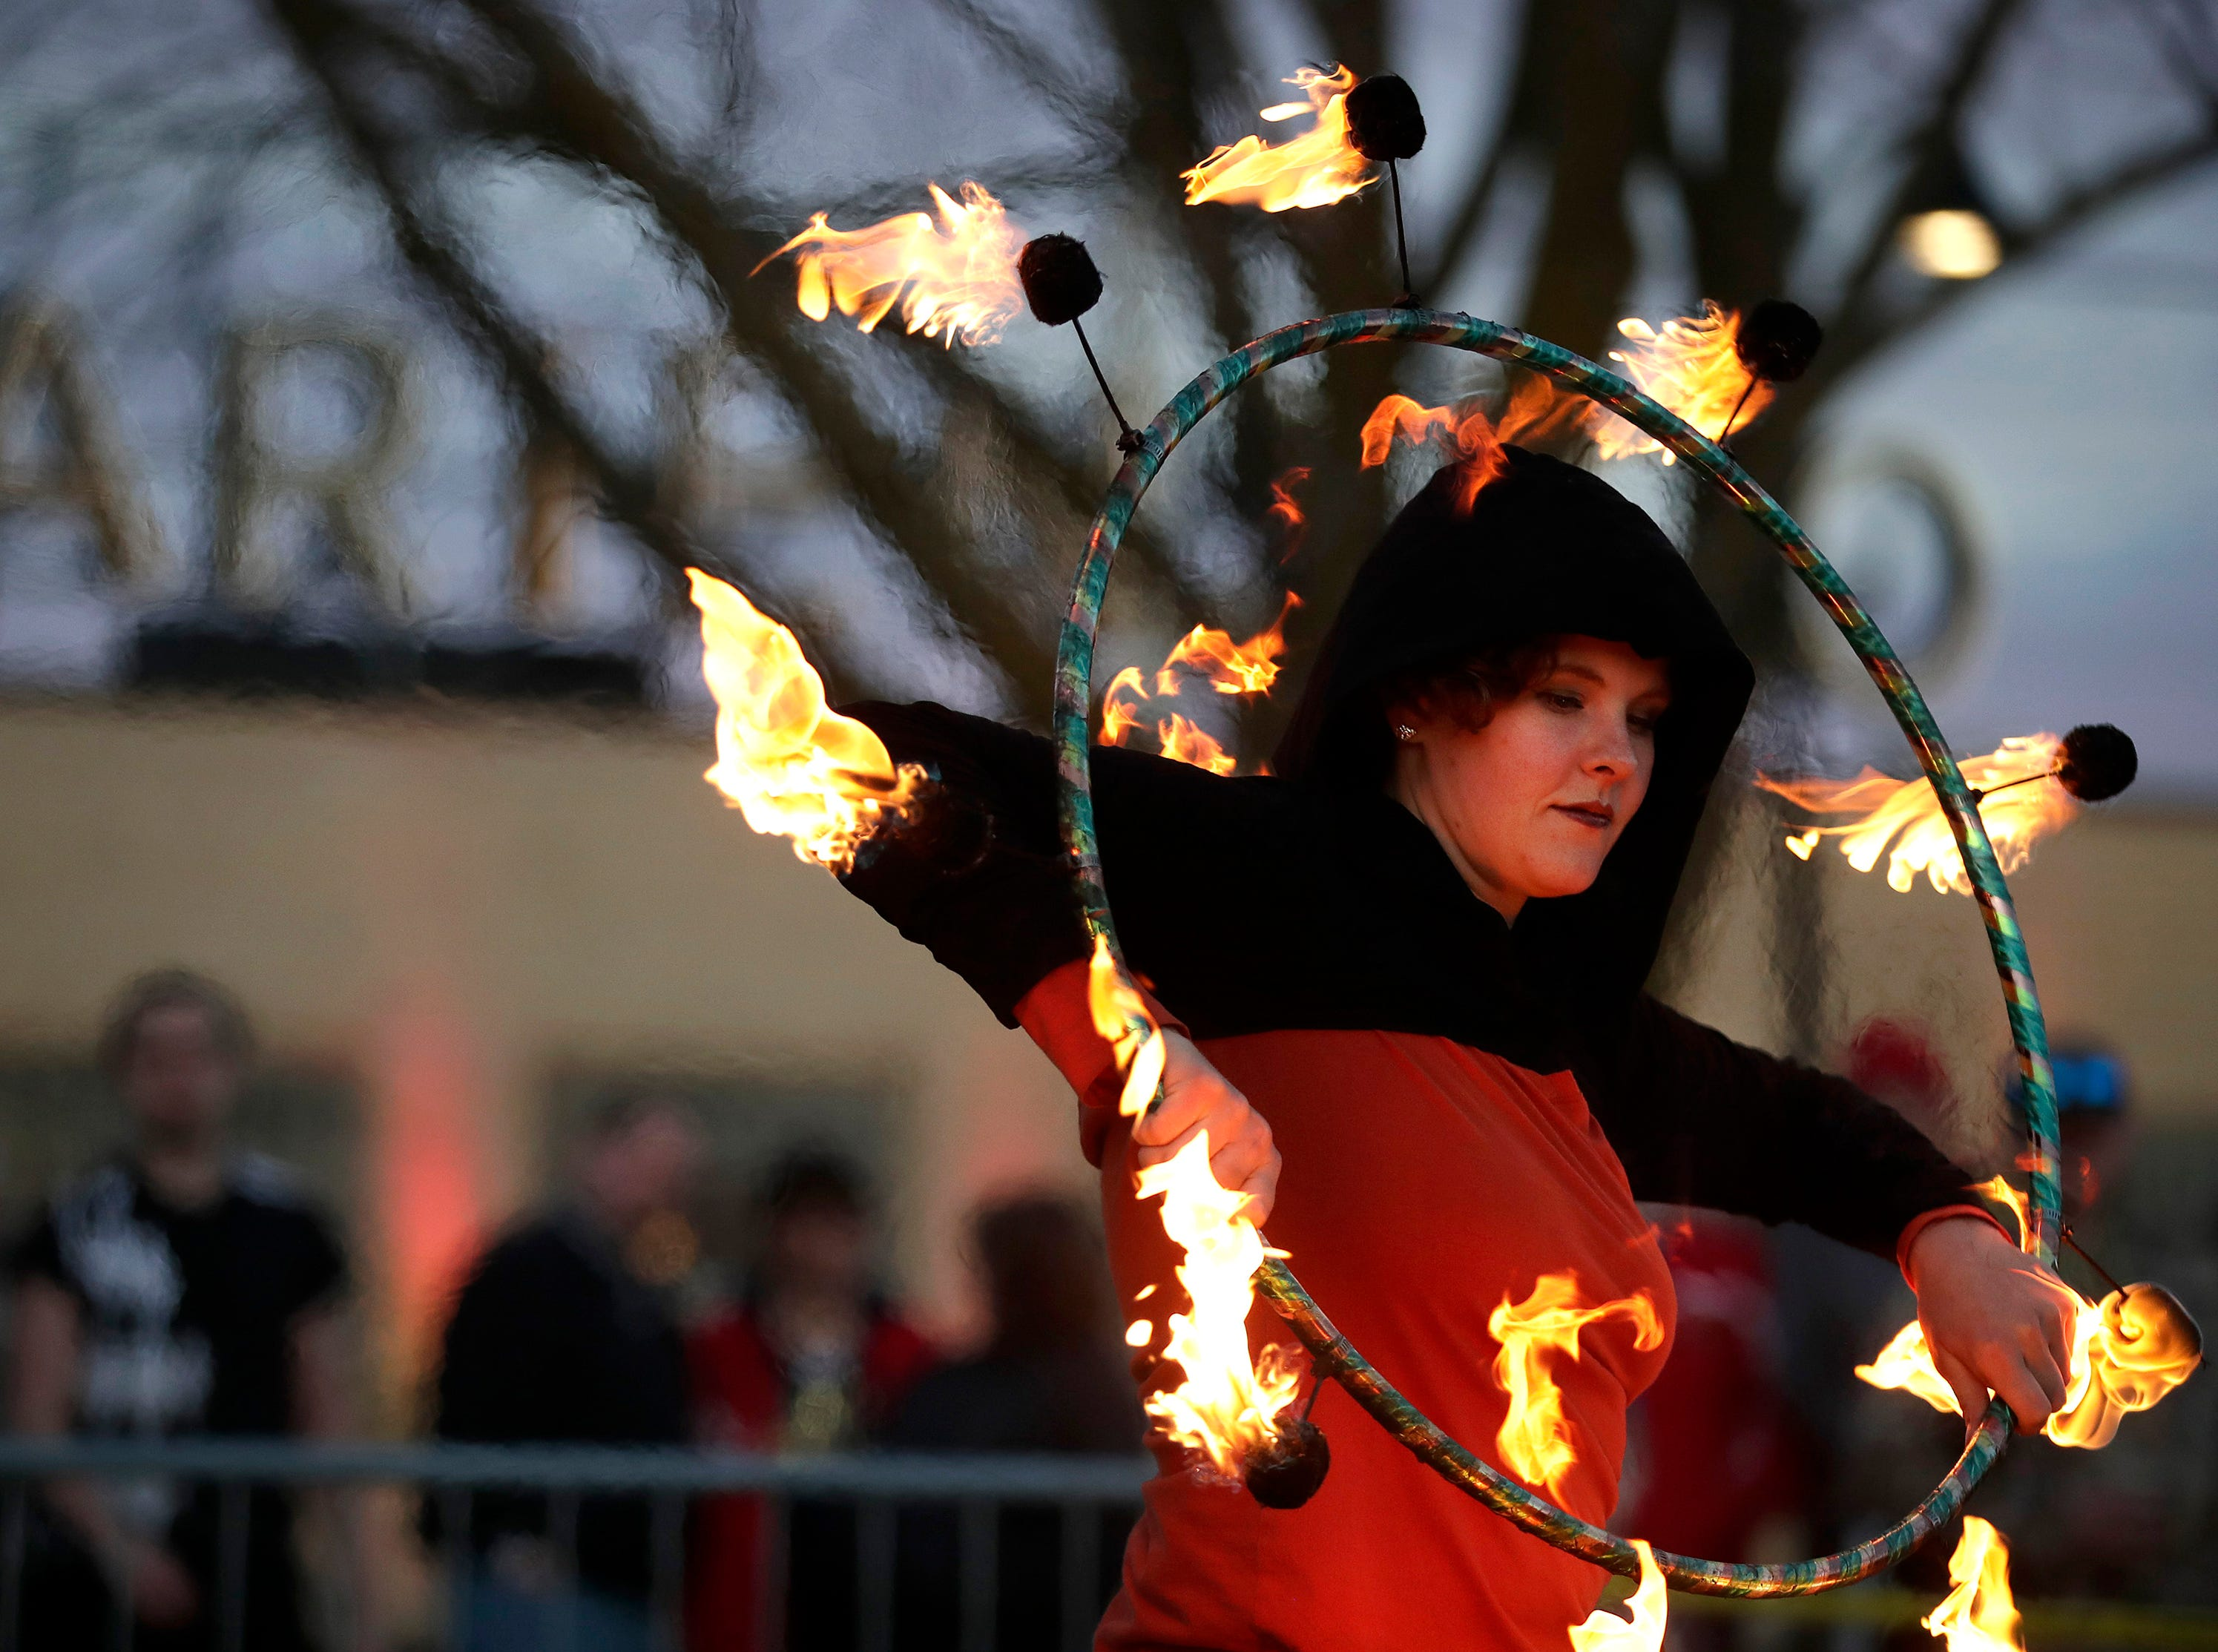 Anna Krueger, with with Fox Valley Fire and Flow Collective, performs in front of the Ariens Co Museum during Bazaar After Dark Saturday, May 11, 2019, in Brillion, Wis. Danny Damiani/USA TODAY NETWORK-Wisconsin